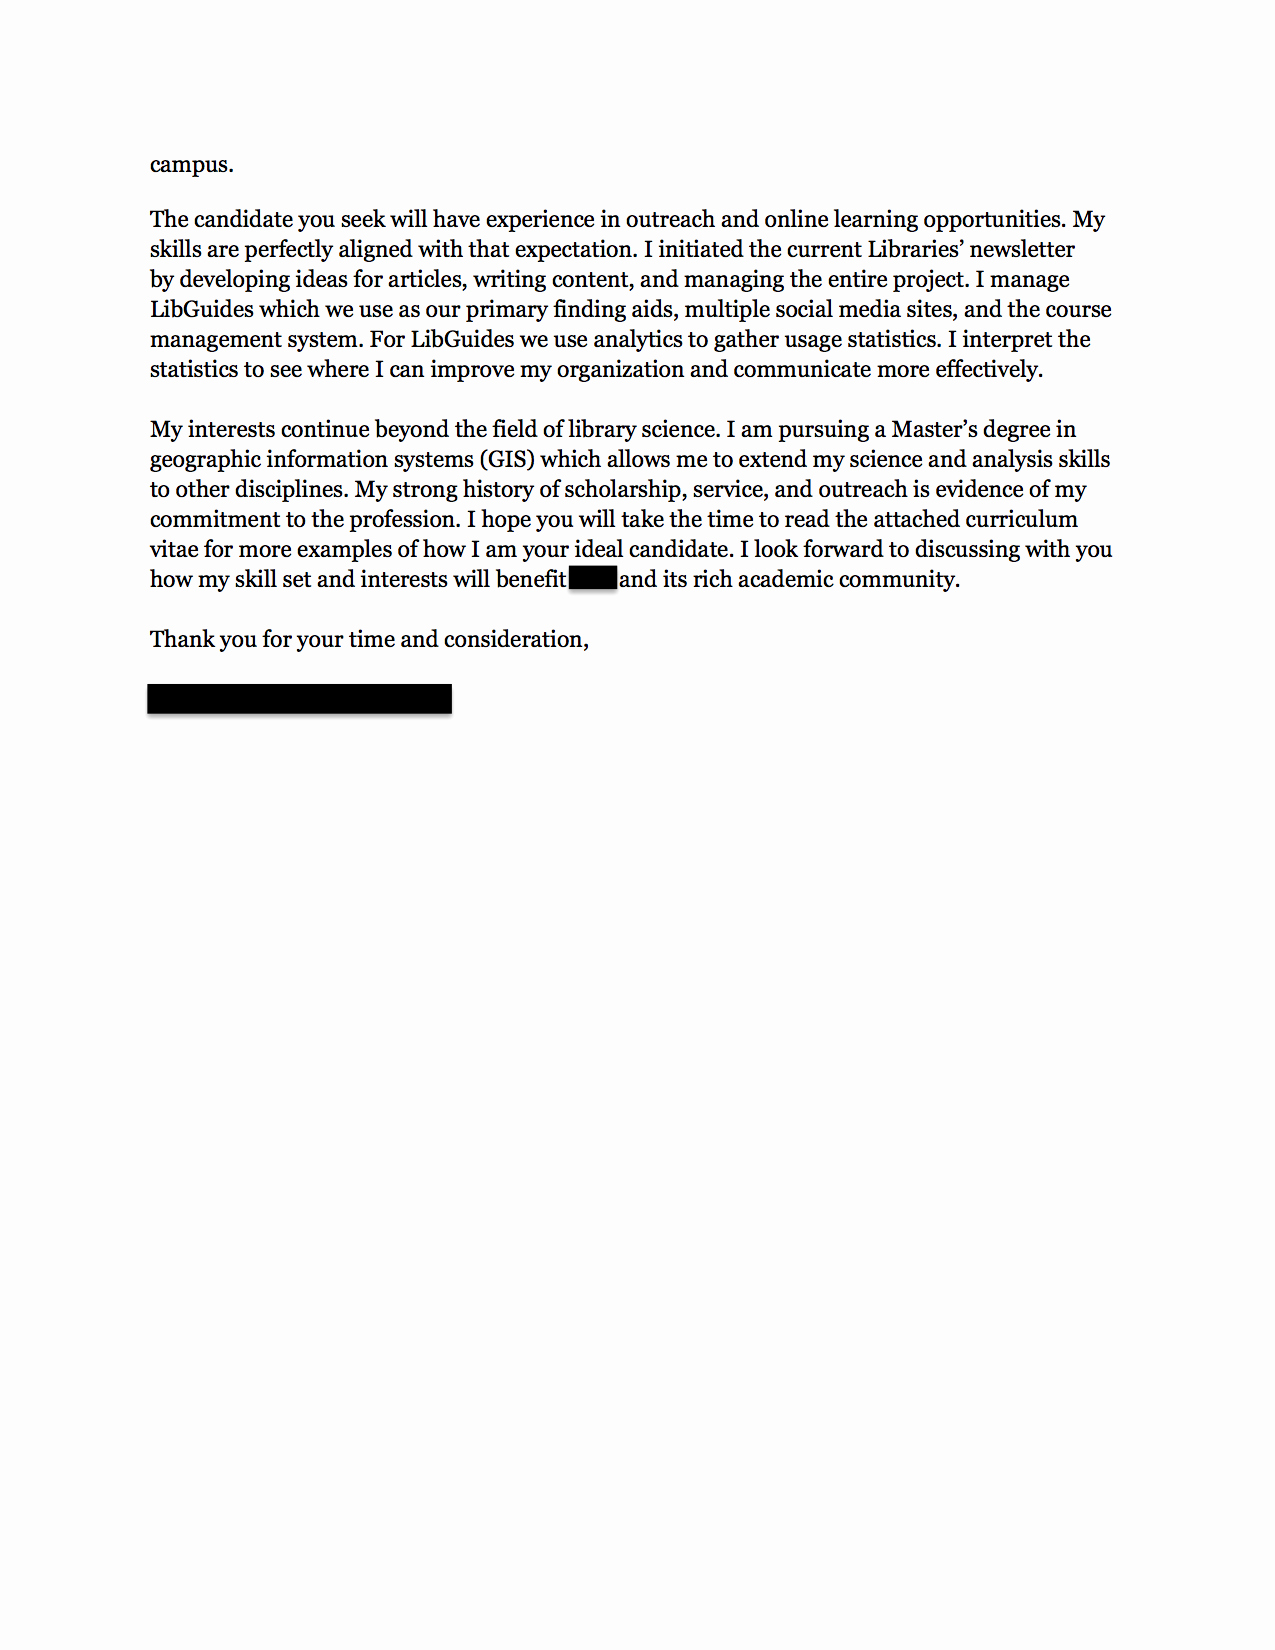 Elements Of A Cover Letter Inspirational Munity Relations Cover Letter Use This Academic